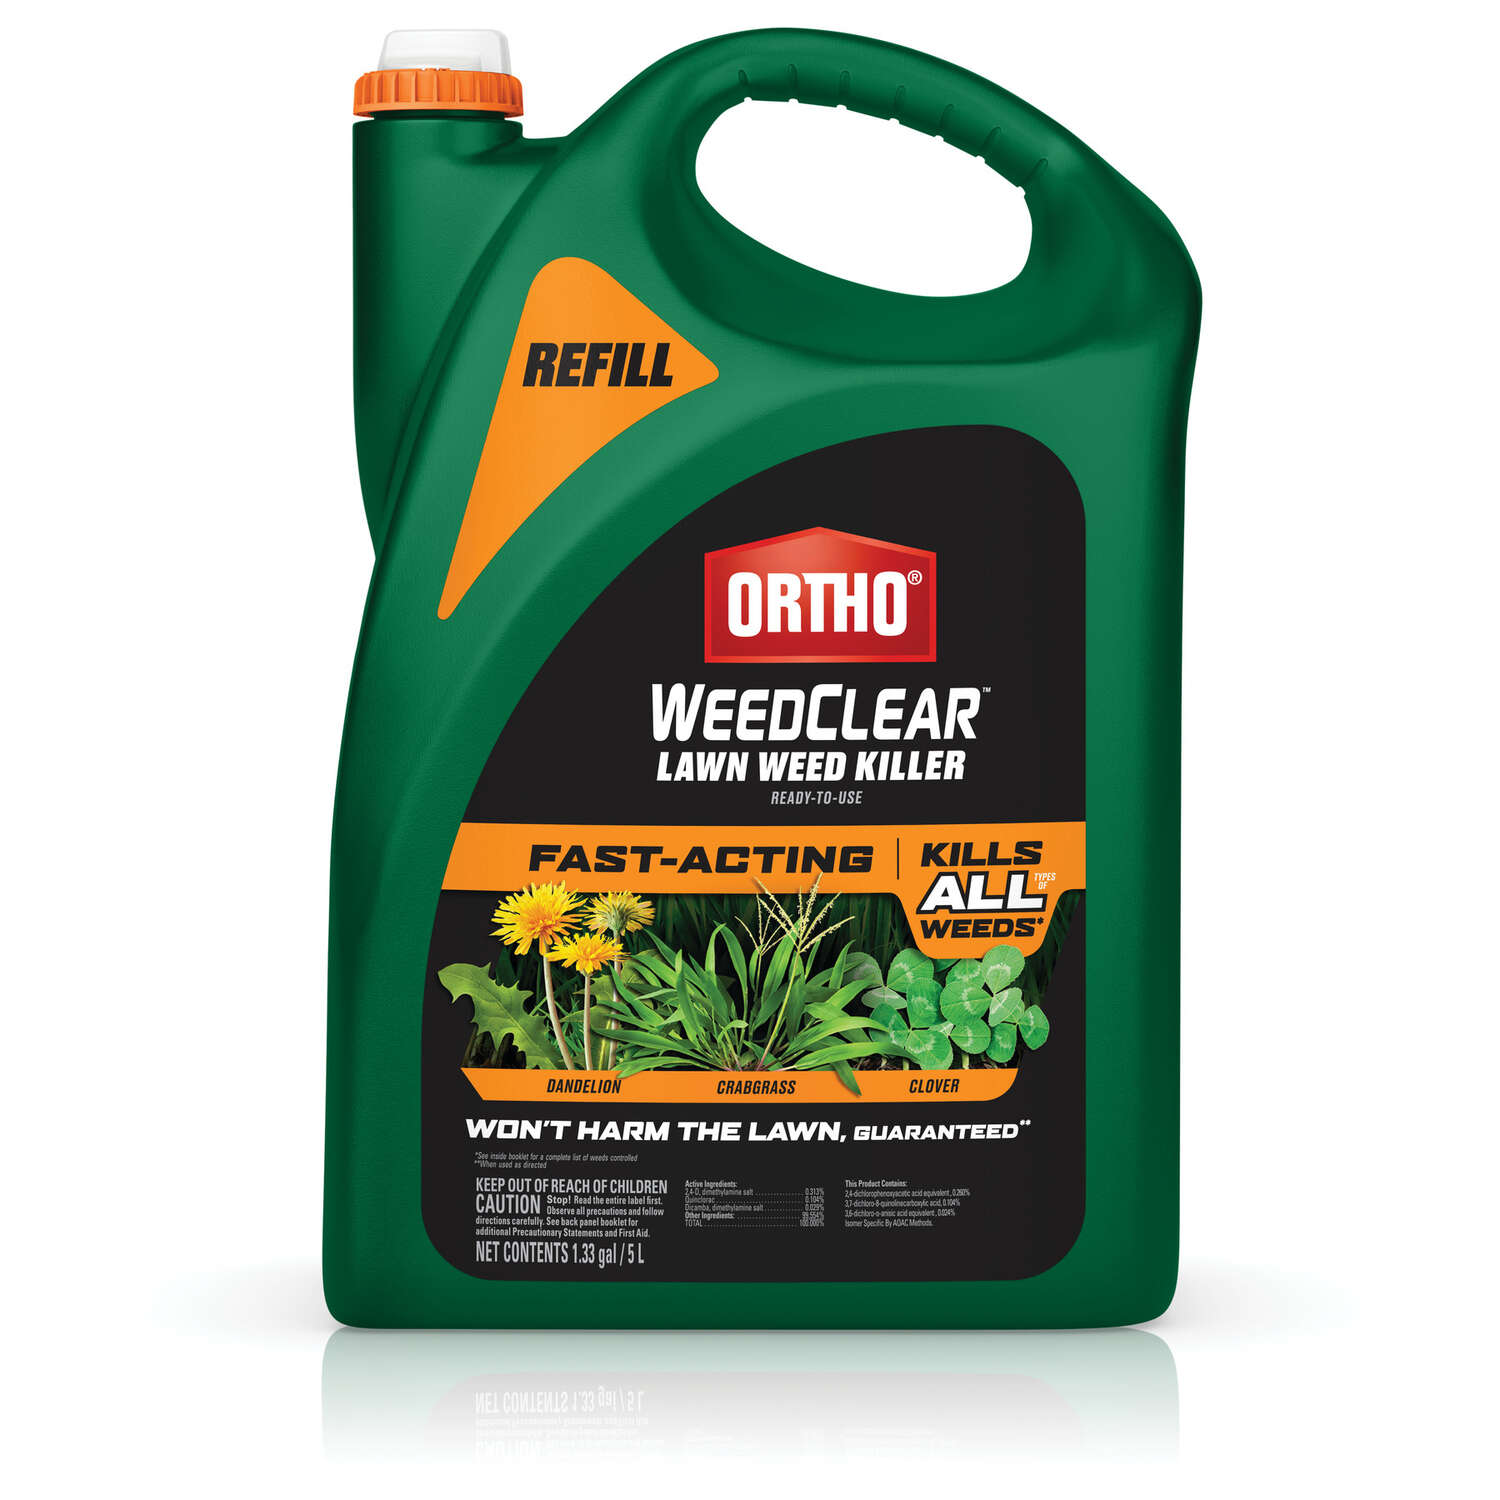 Ortho WeedClear Weed Killer RTU Liquid 1.33 gal.